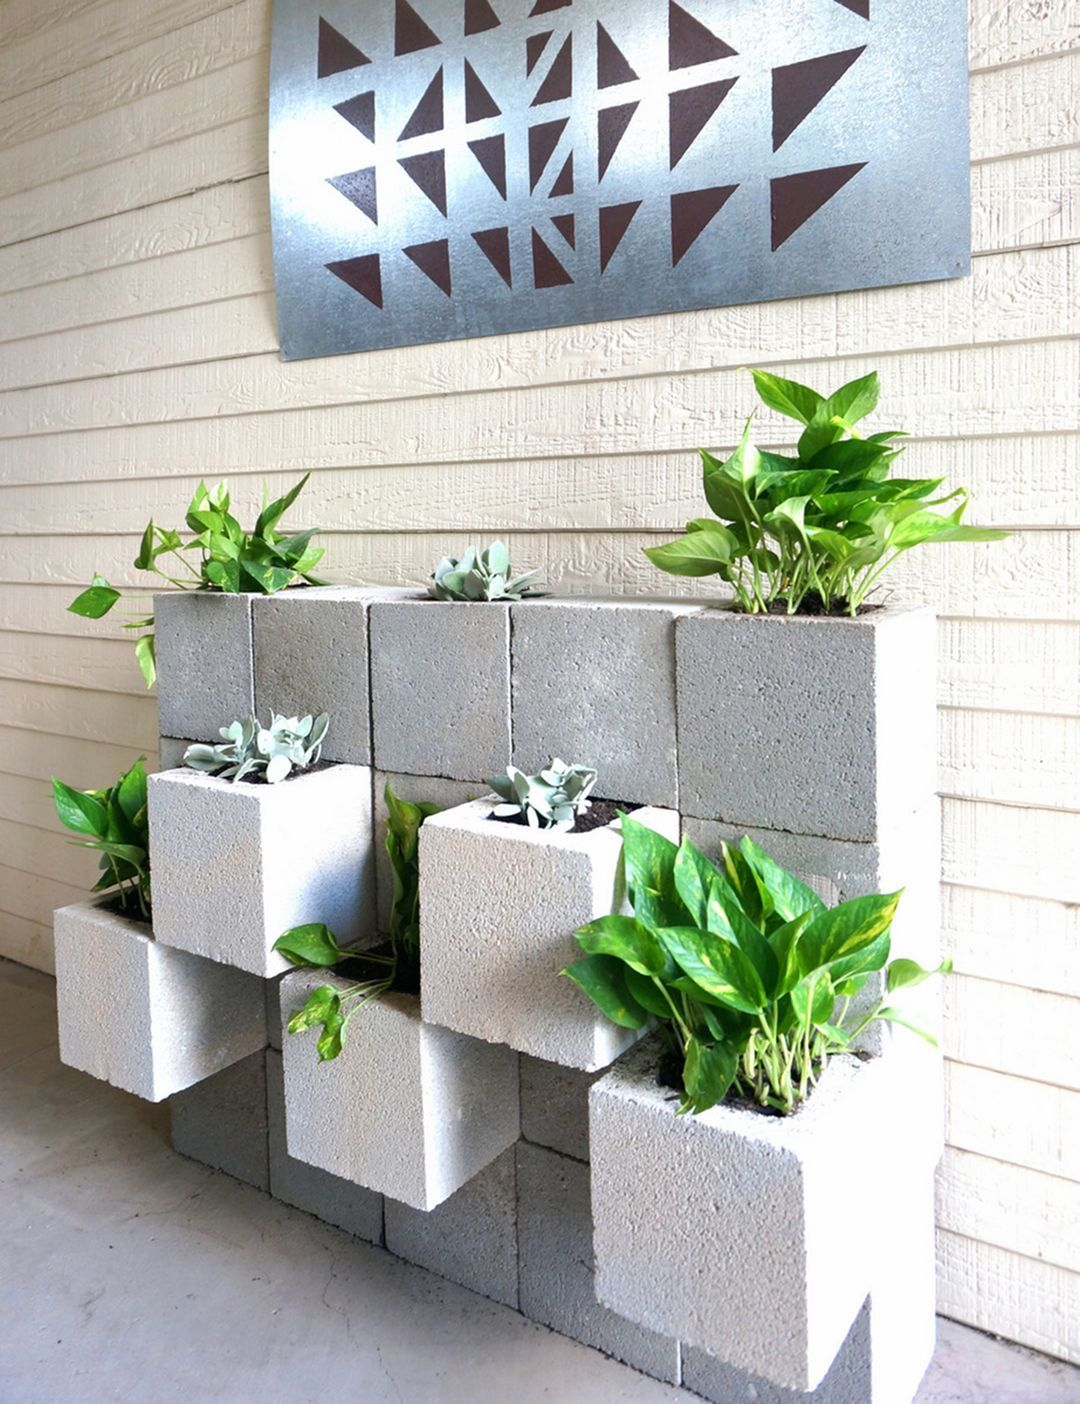 Decorative Cinder Blocks For Outdoor | Decorative cinder ... on Backyard Cinder Block Wall Ideas id=49848